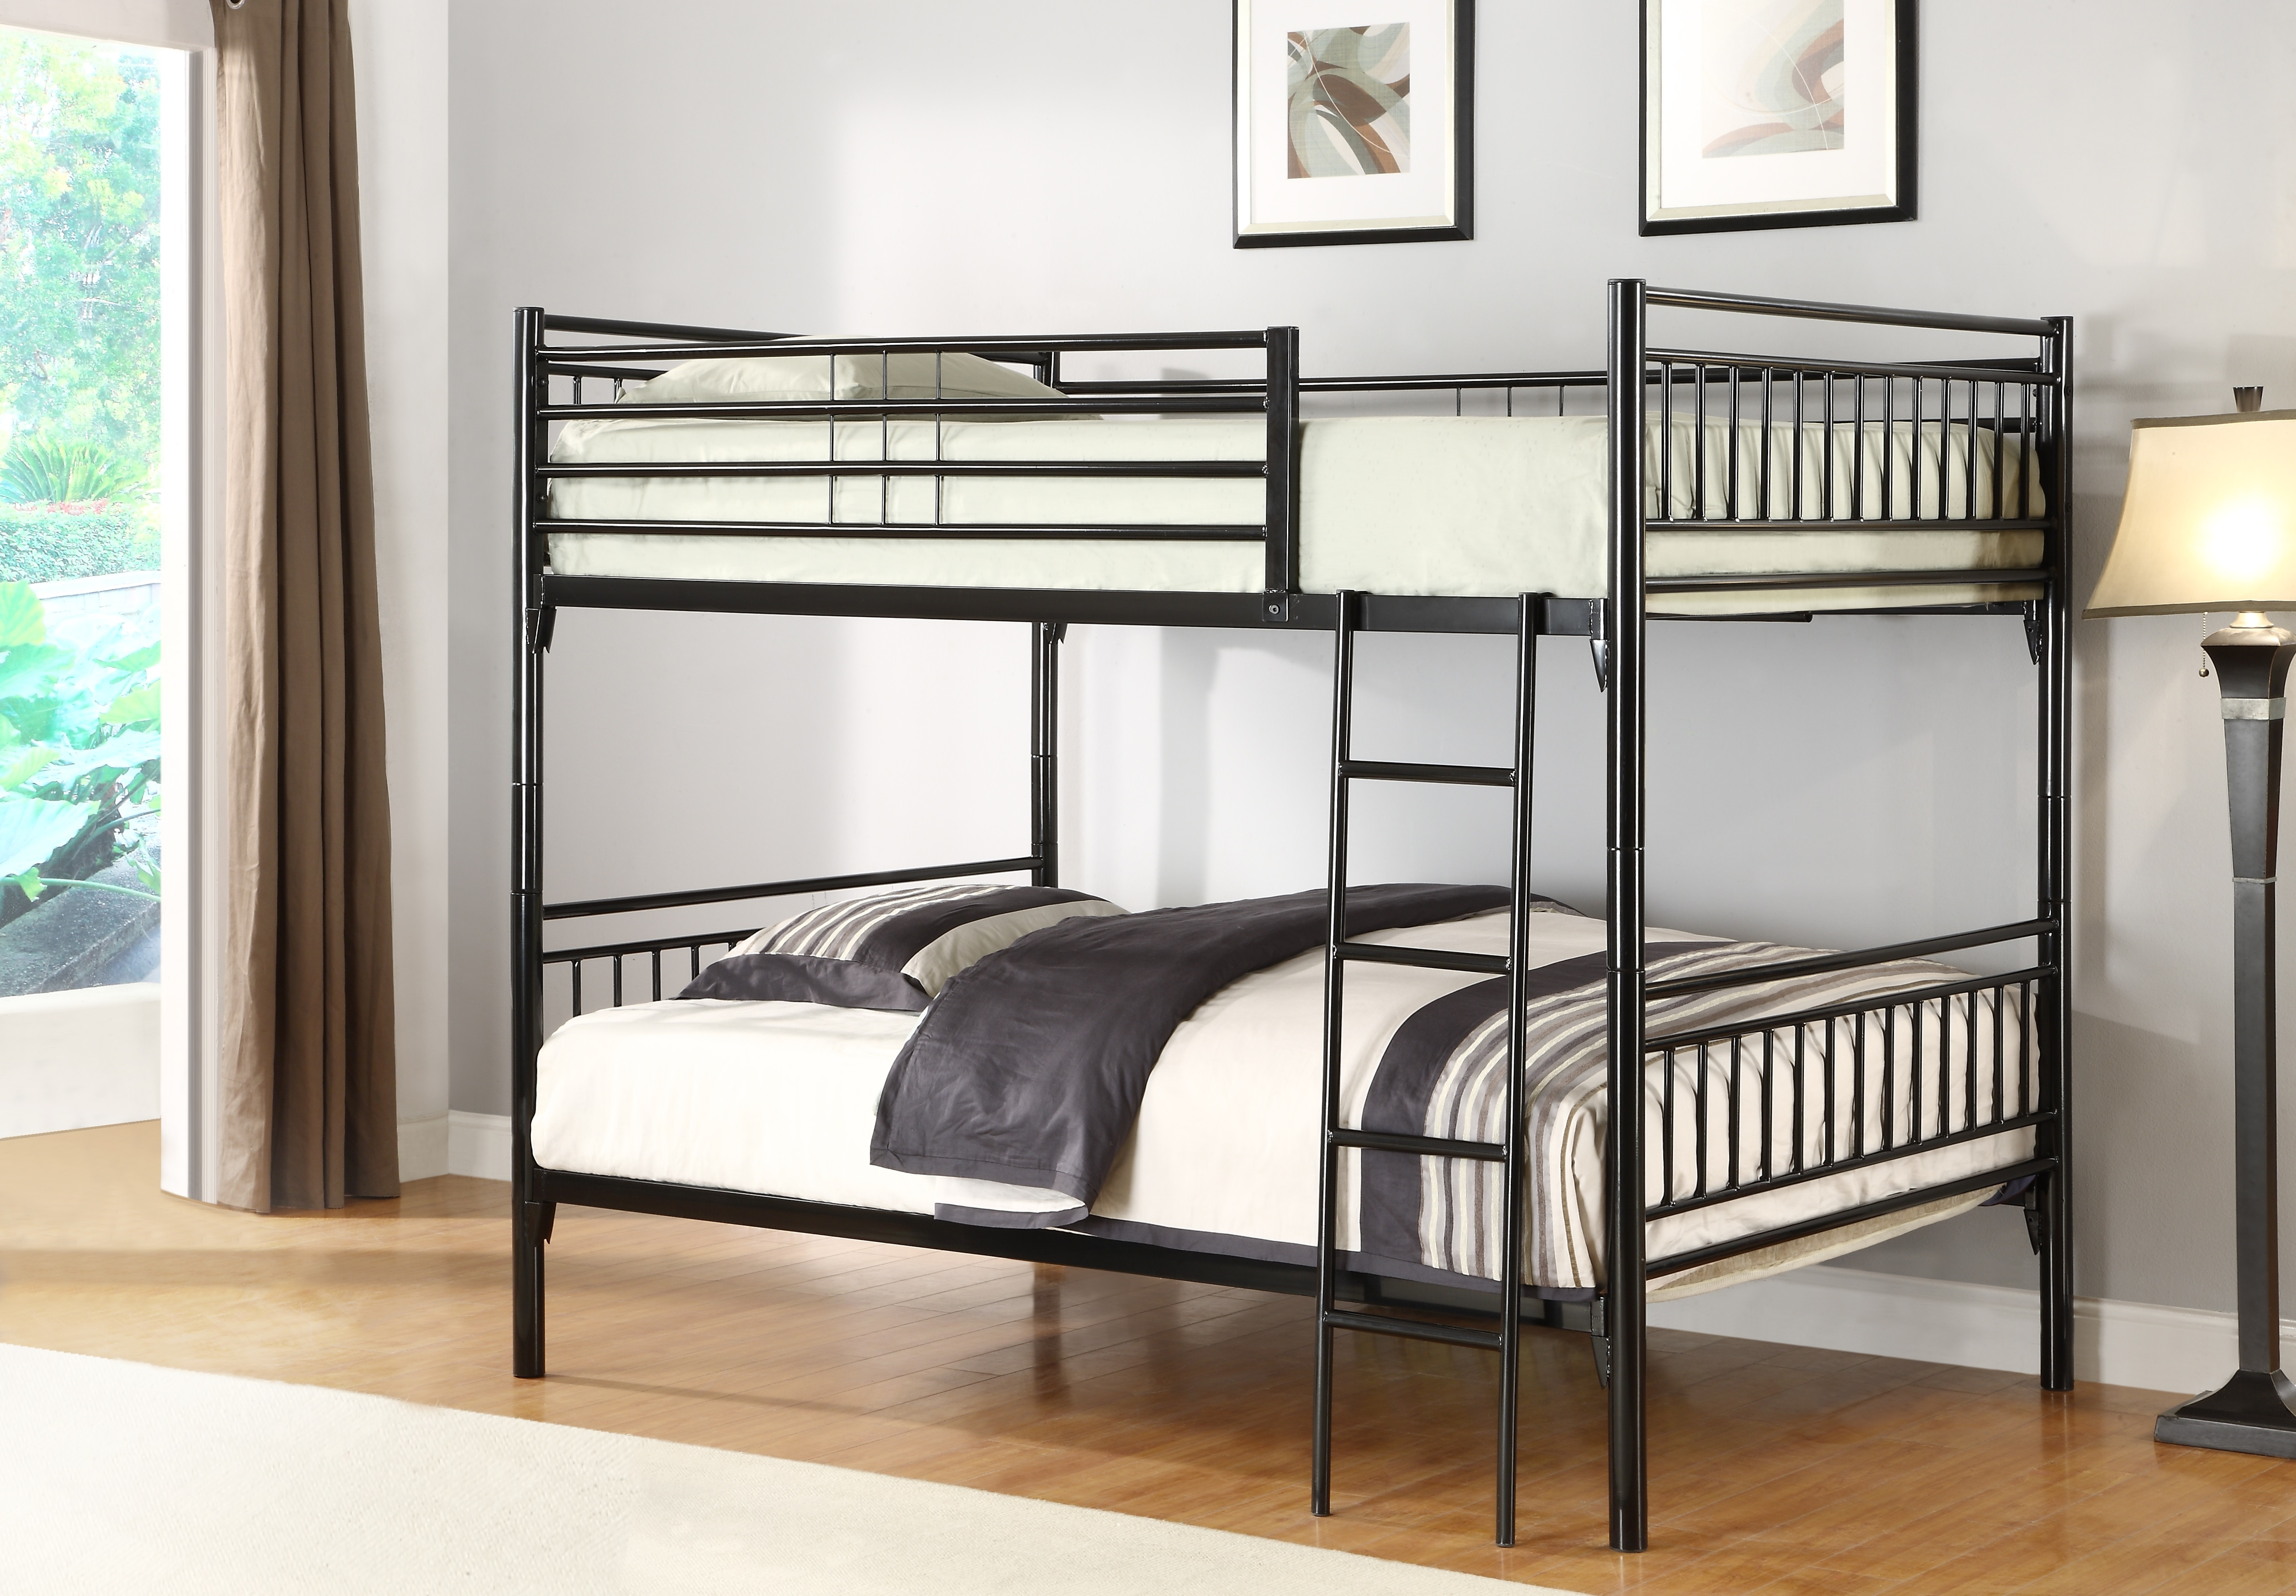 Saturn Bunk Bed Saturn Double Double Detachable Metal Bunk Bed In Black